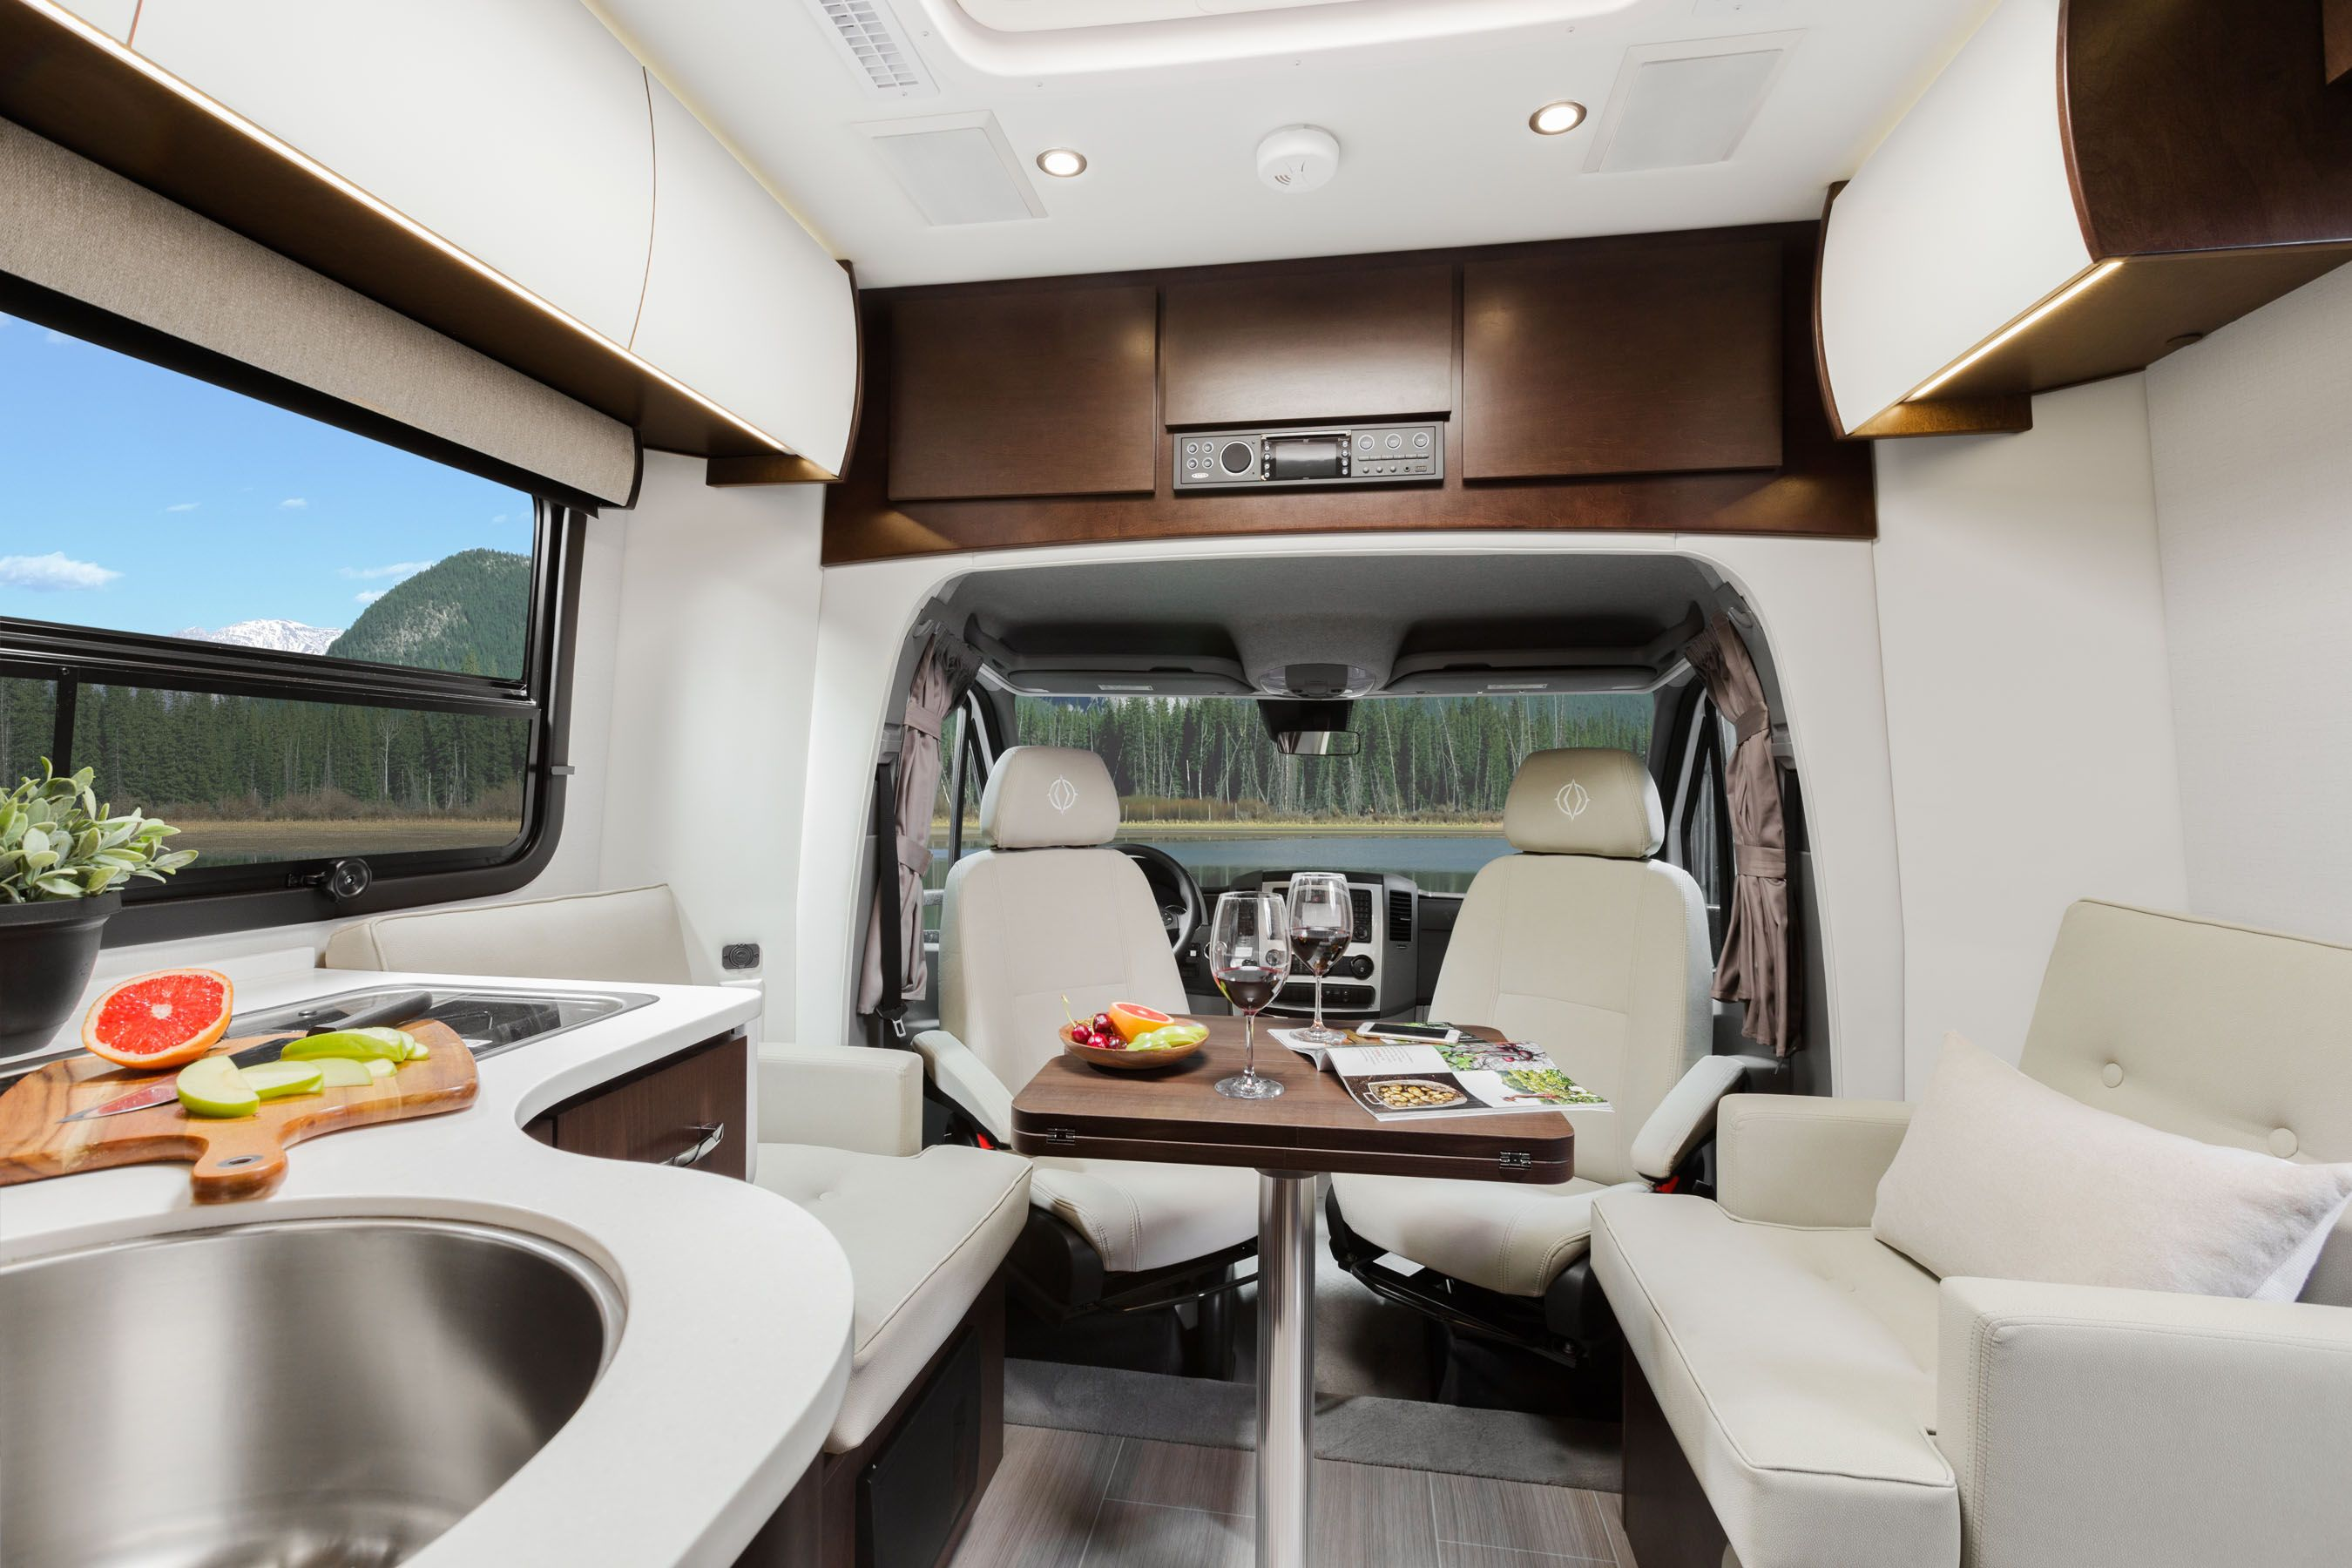 Image Result For Class B Rv With Large Bathroom And Storage And